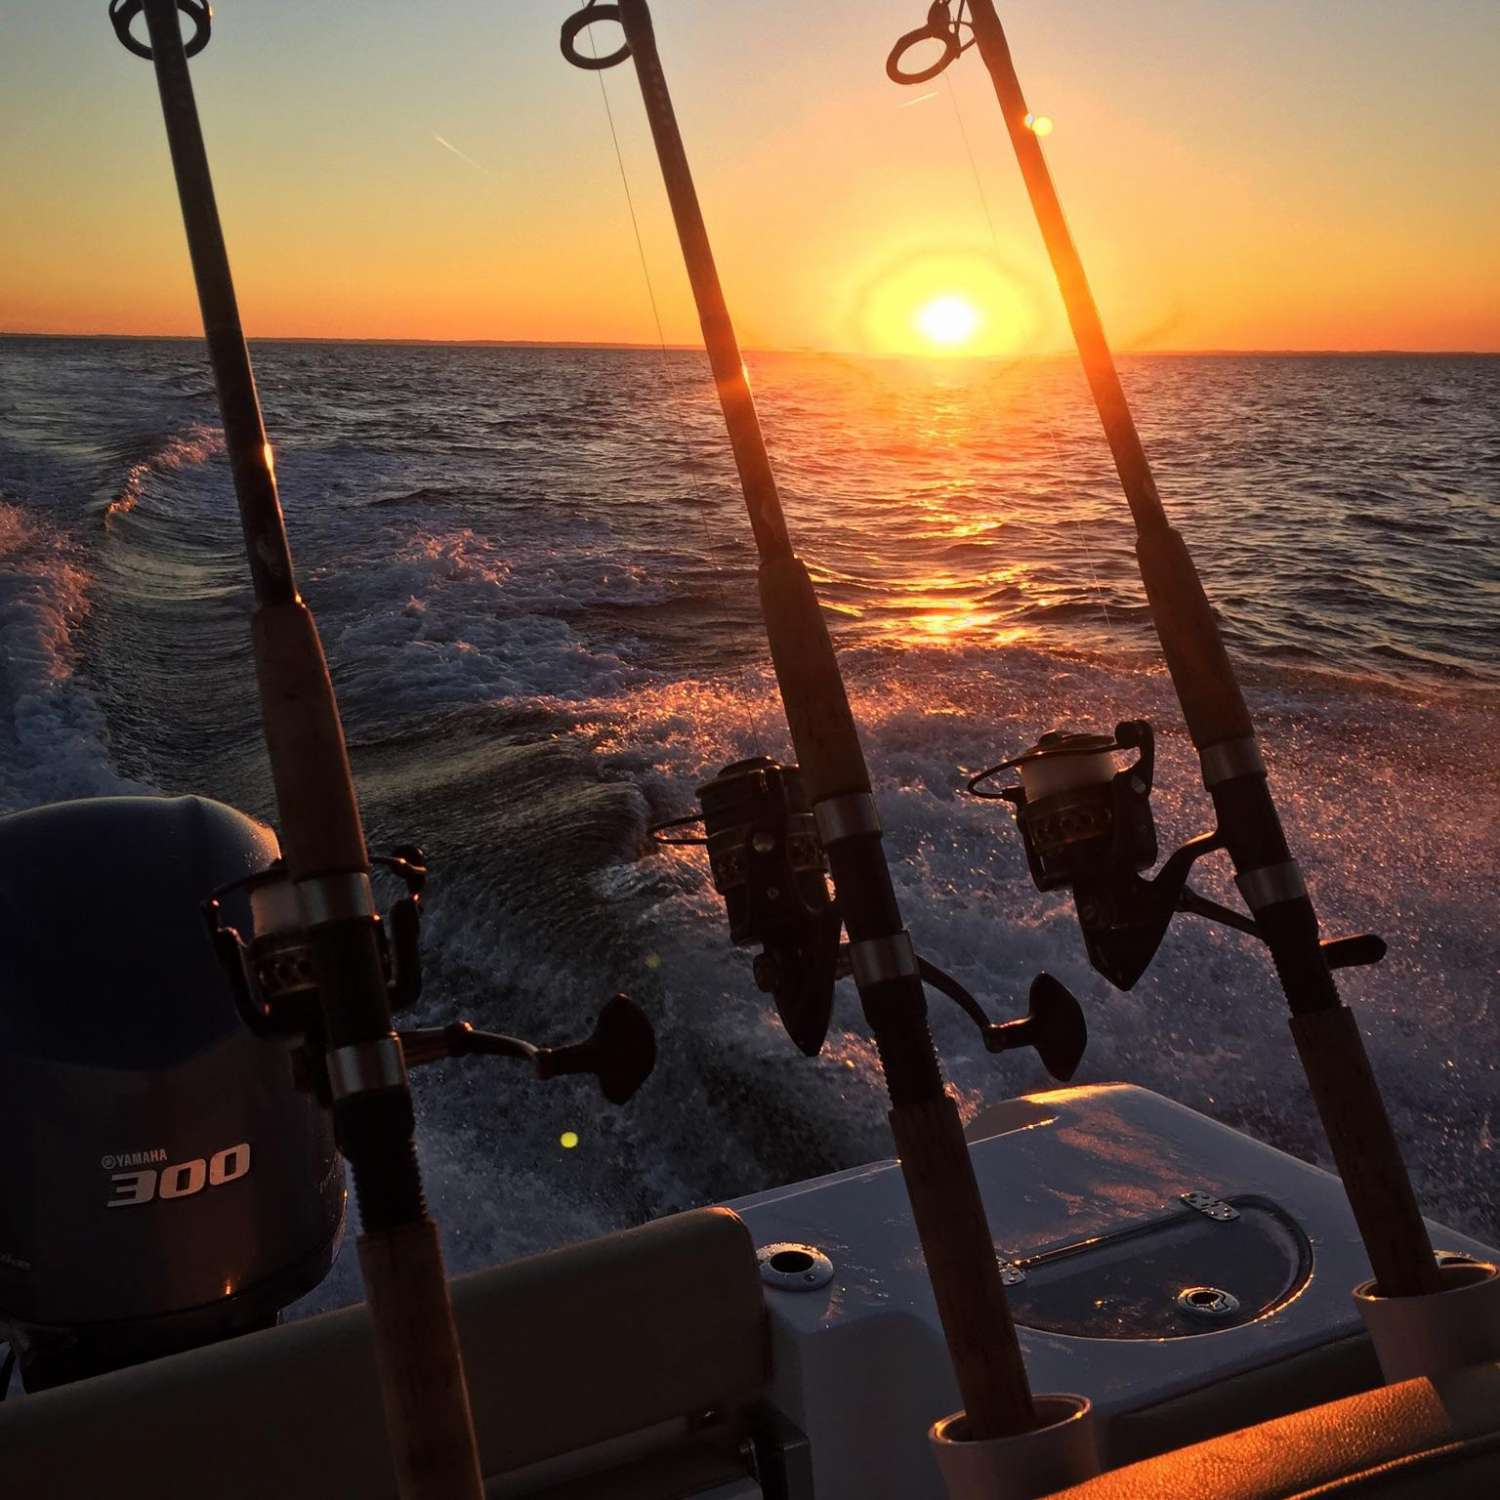 Title: Sunset On The Chesapeake - On board their Sportsman Open 252 Center Console - Location: Grasonville, Maryland. Participating in the Photo Contest #SportsmanNovember2015